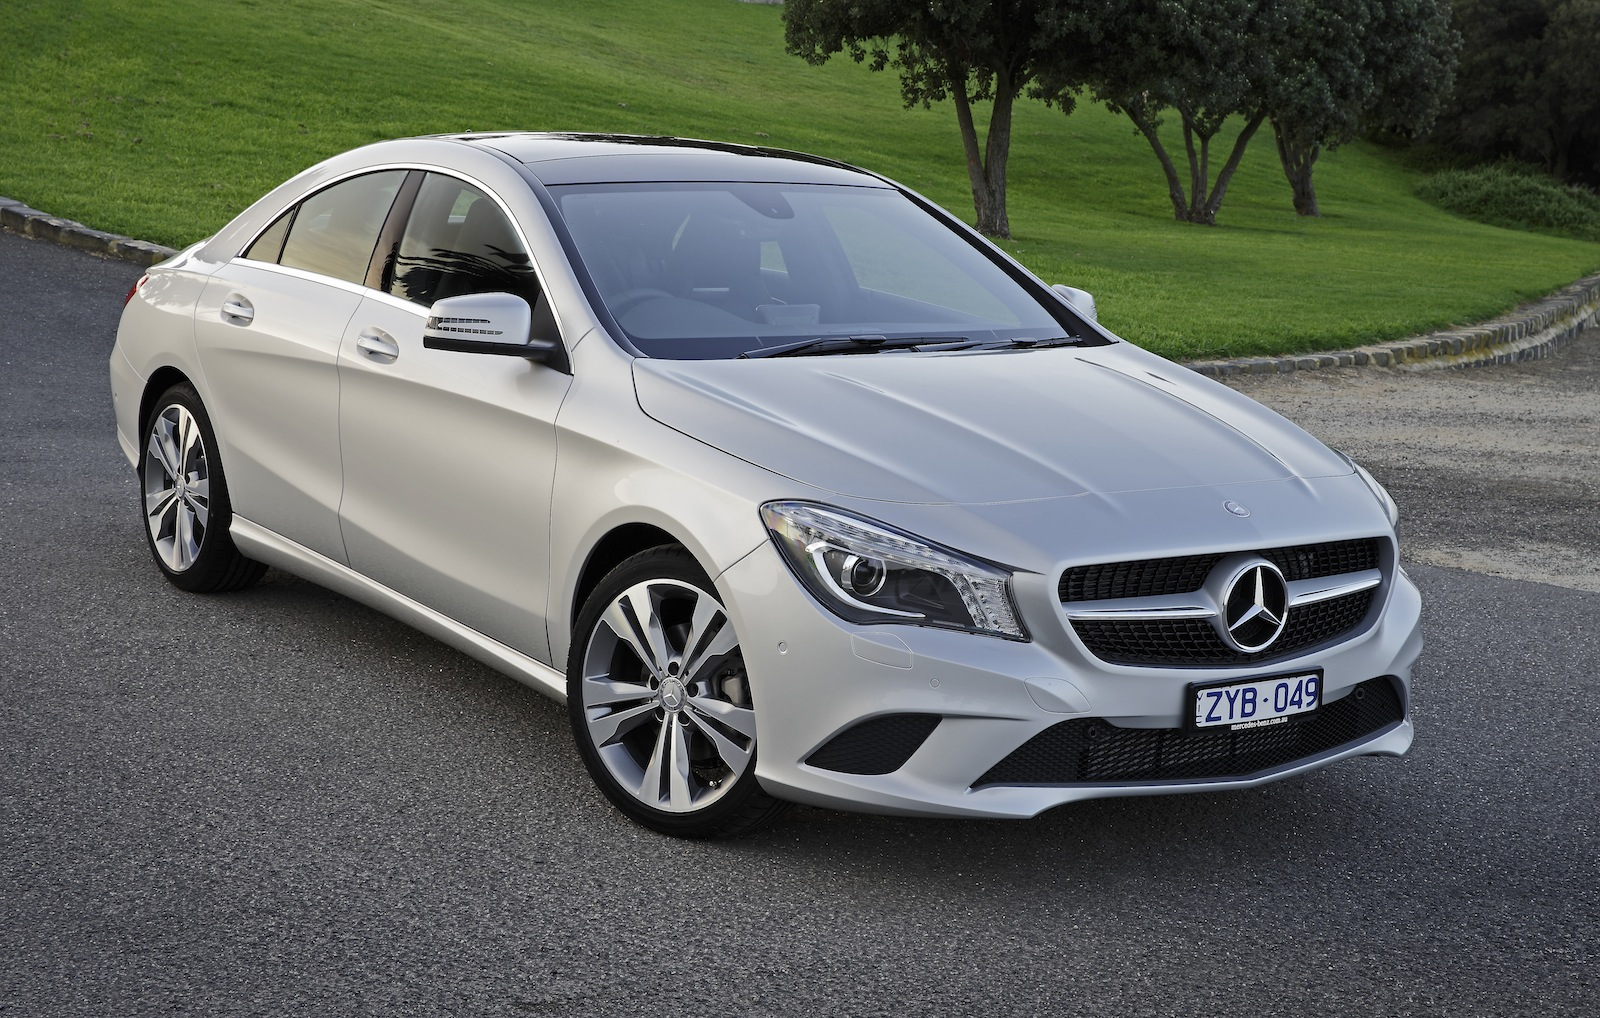 Mercedes benz cla class review cla200 caradvice for Mercedes benze cla